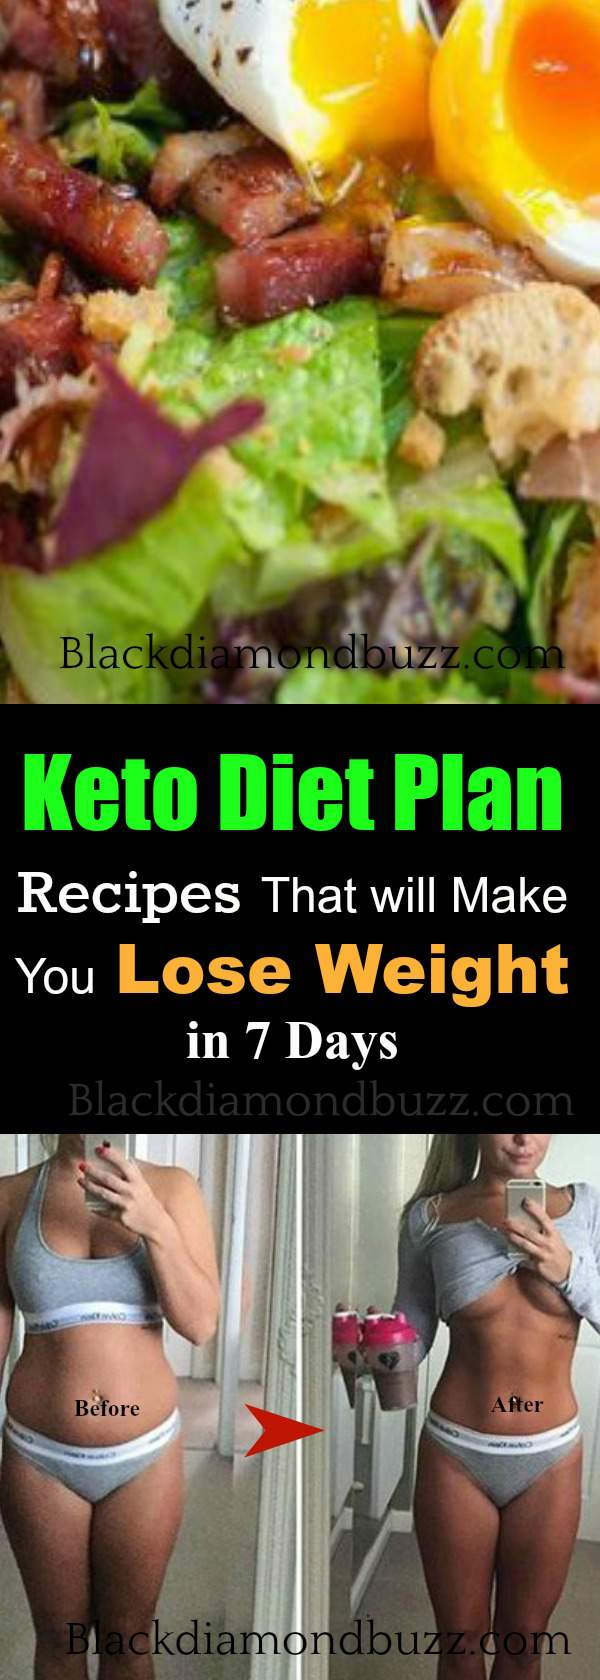 Keto diet plan recipes that will make you lose weight in 7 days keto diet plan recipes that will make you lose weight in 7 days 2 forumfinder Image collections